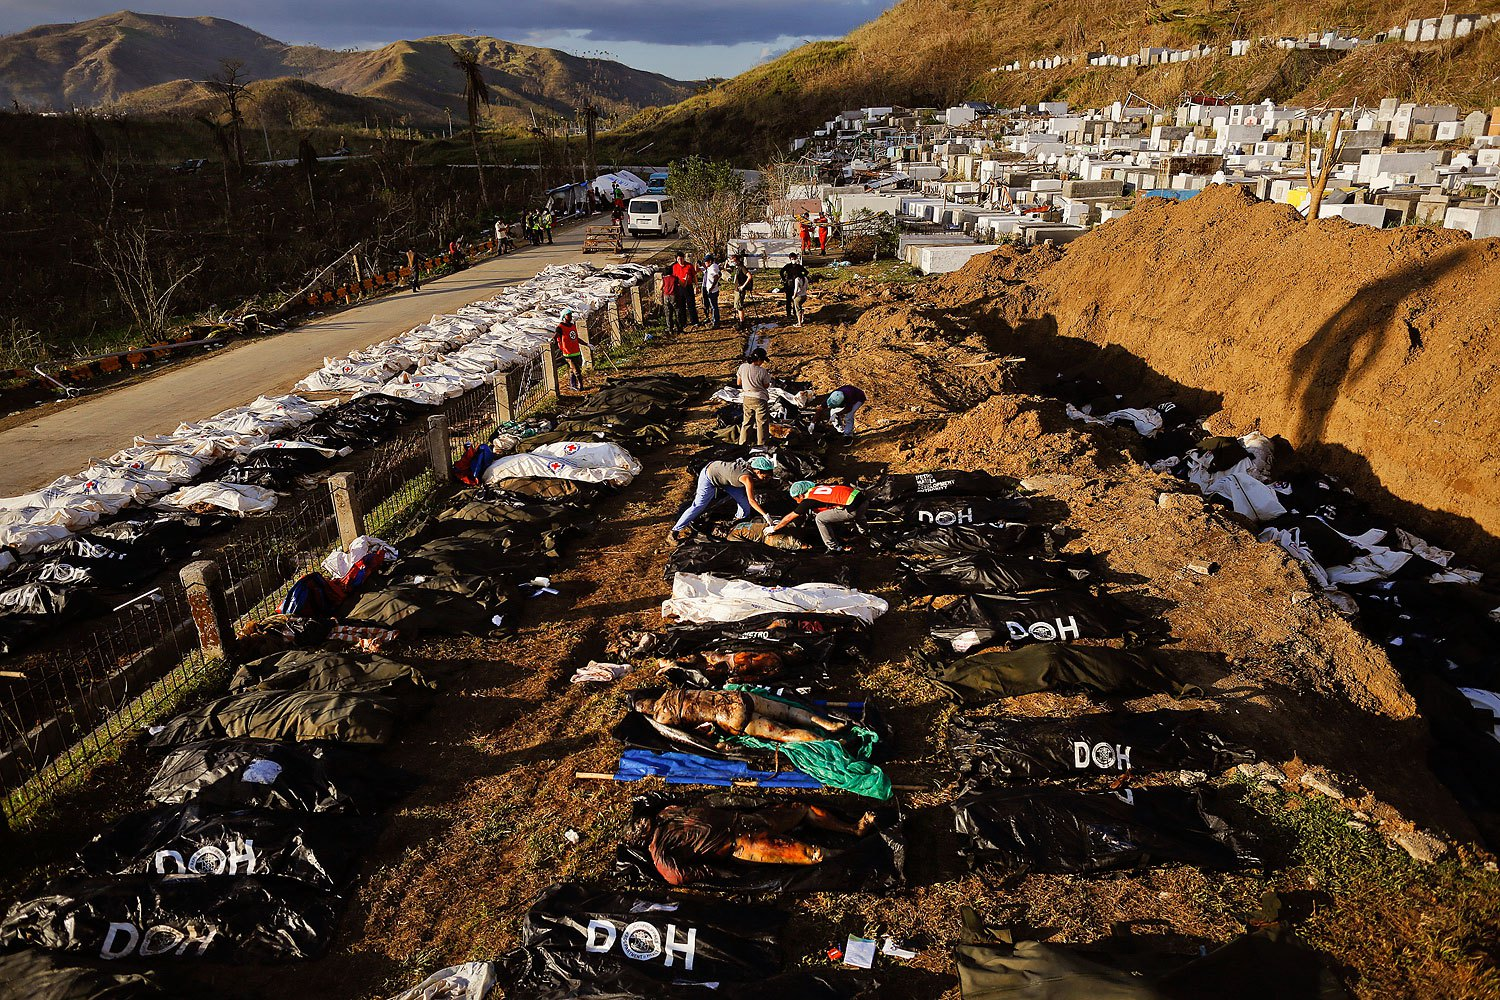 Forensic experts work on a mass grave with more than 700 bodies of victims of Typhoon Haiyan just outside Tacloban on November 18, 2013.